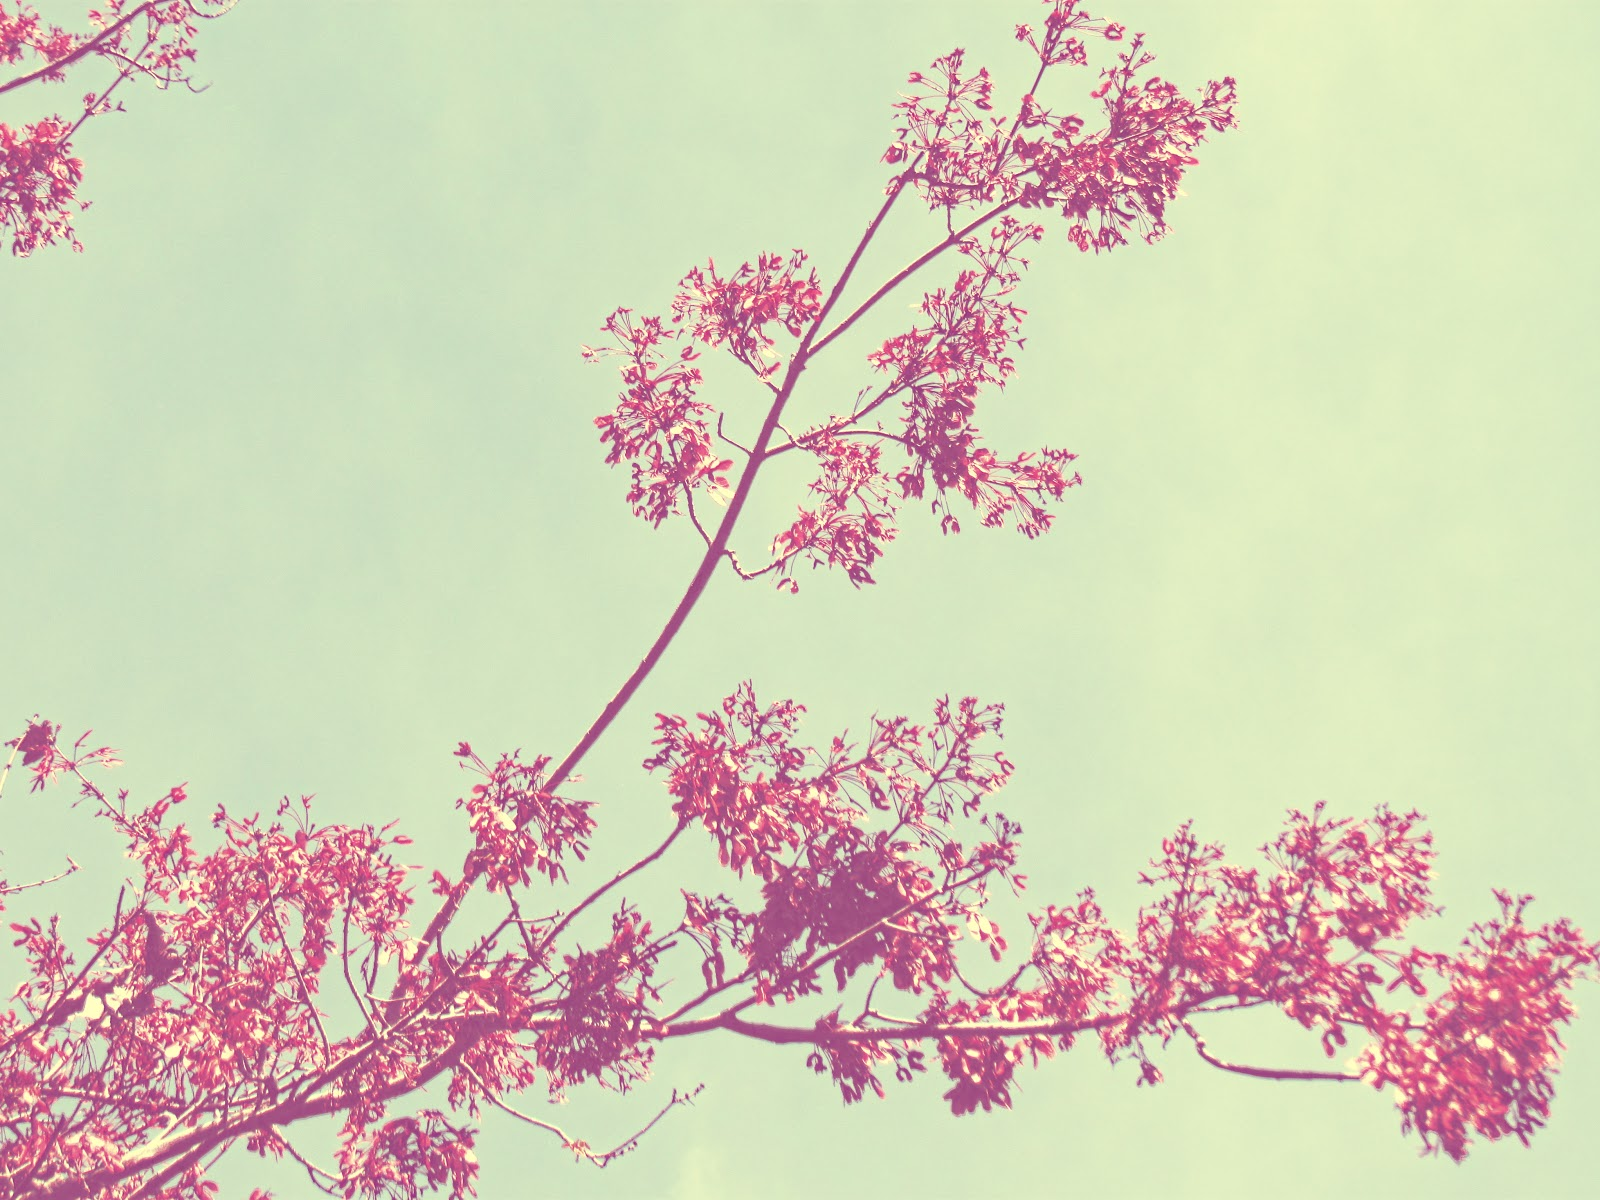 A tree with pink leaves using a soft baby pink filter on it